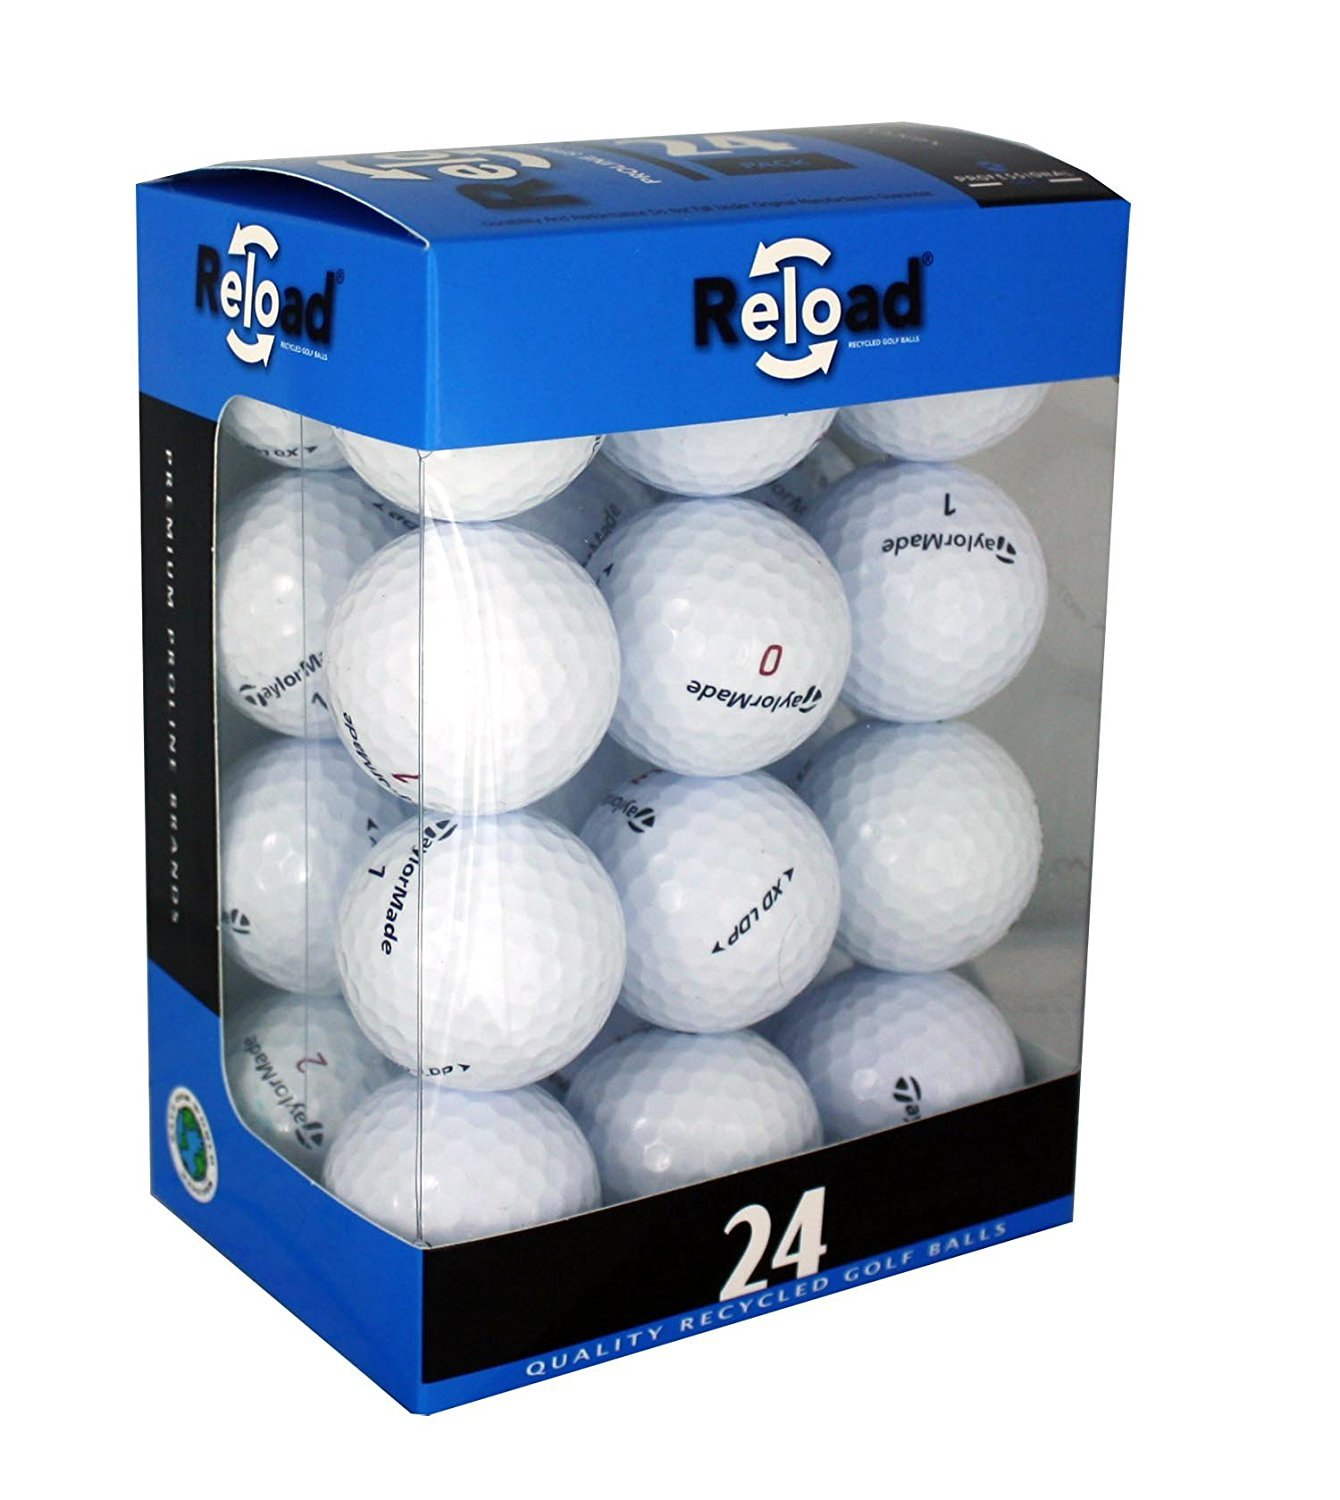 Reload Recycled Golf Balls (24-Pack) of Taylormade Golf Balls [並行輸入品] B071ZXK6DL